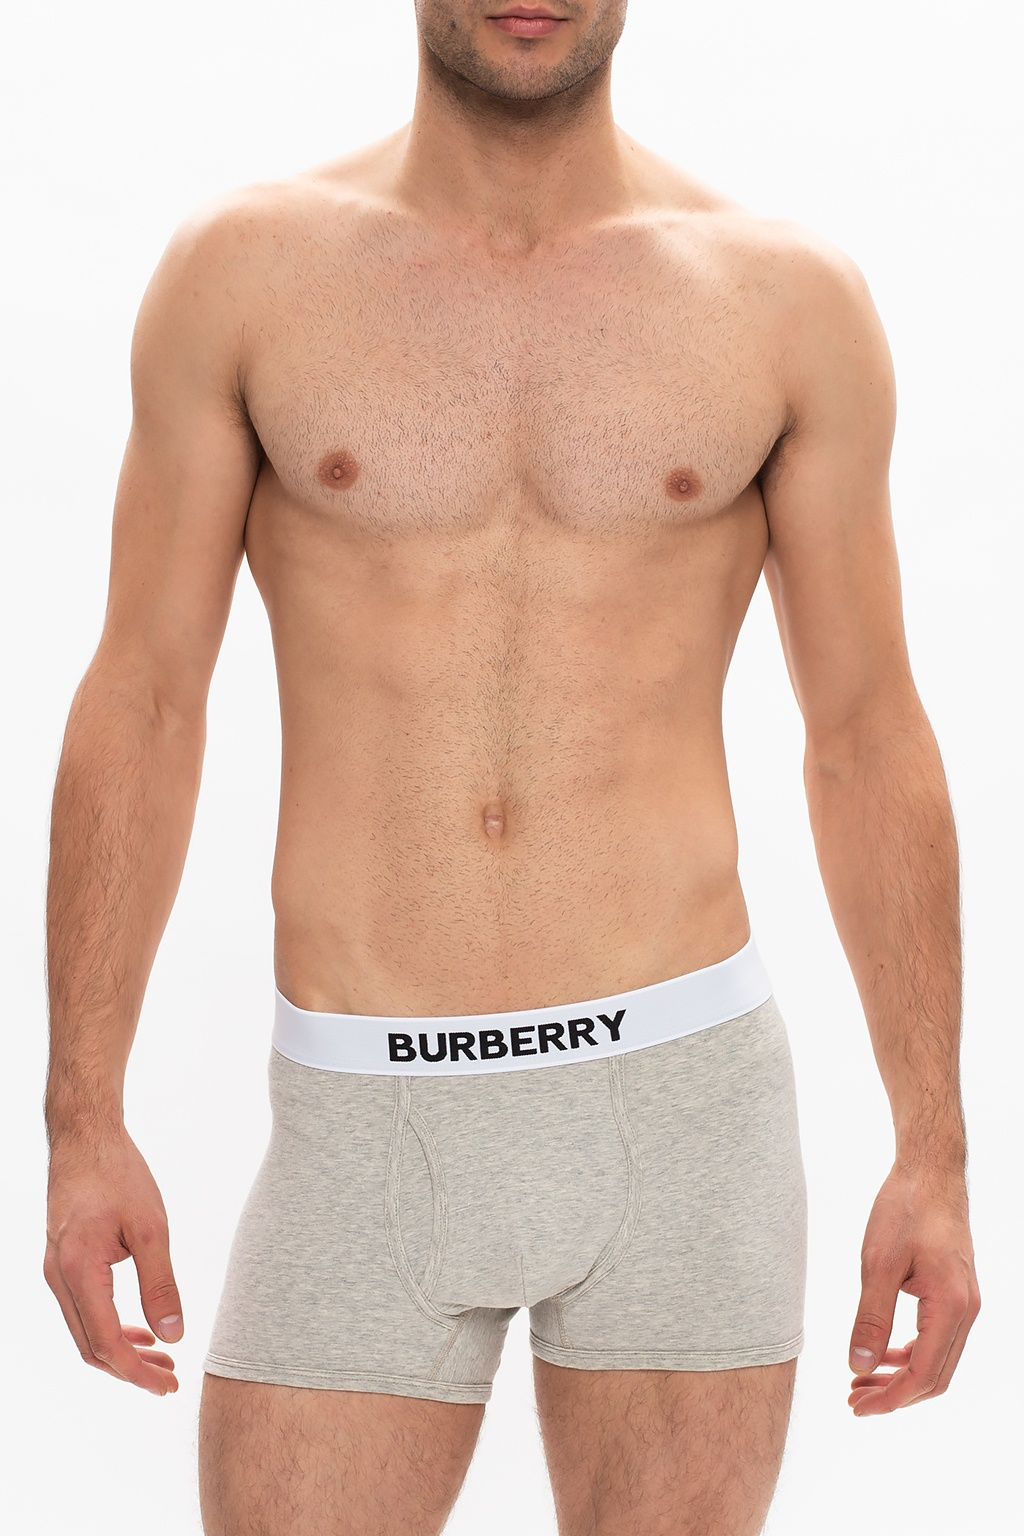 Burberry Boxers with logo